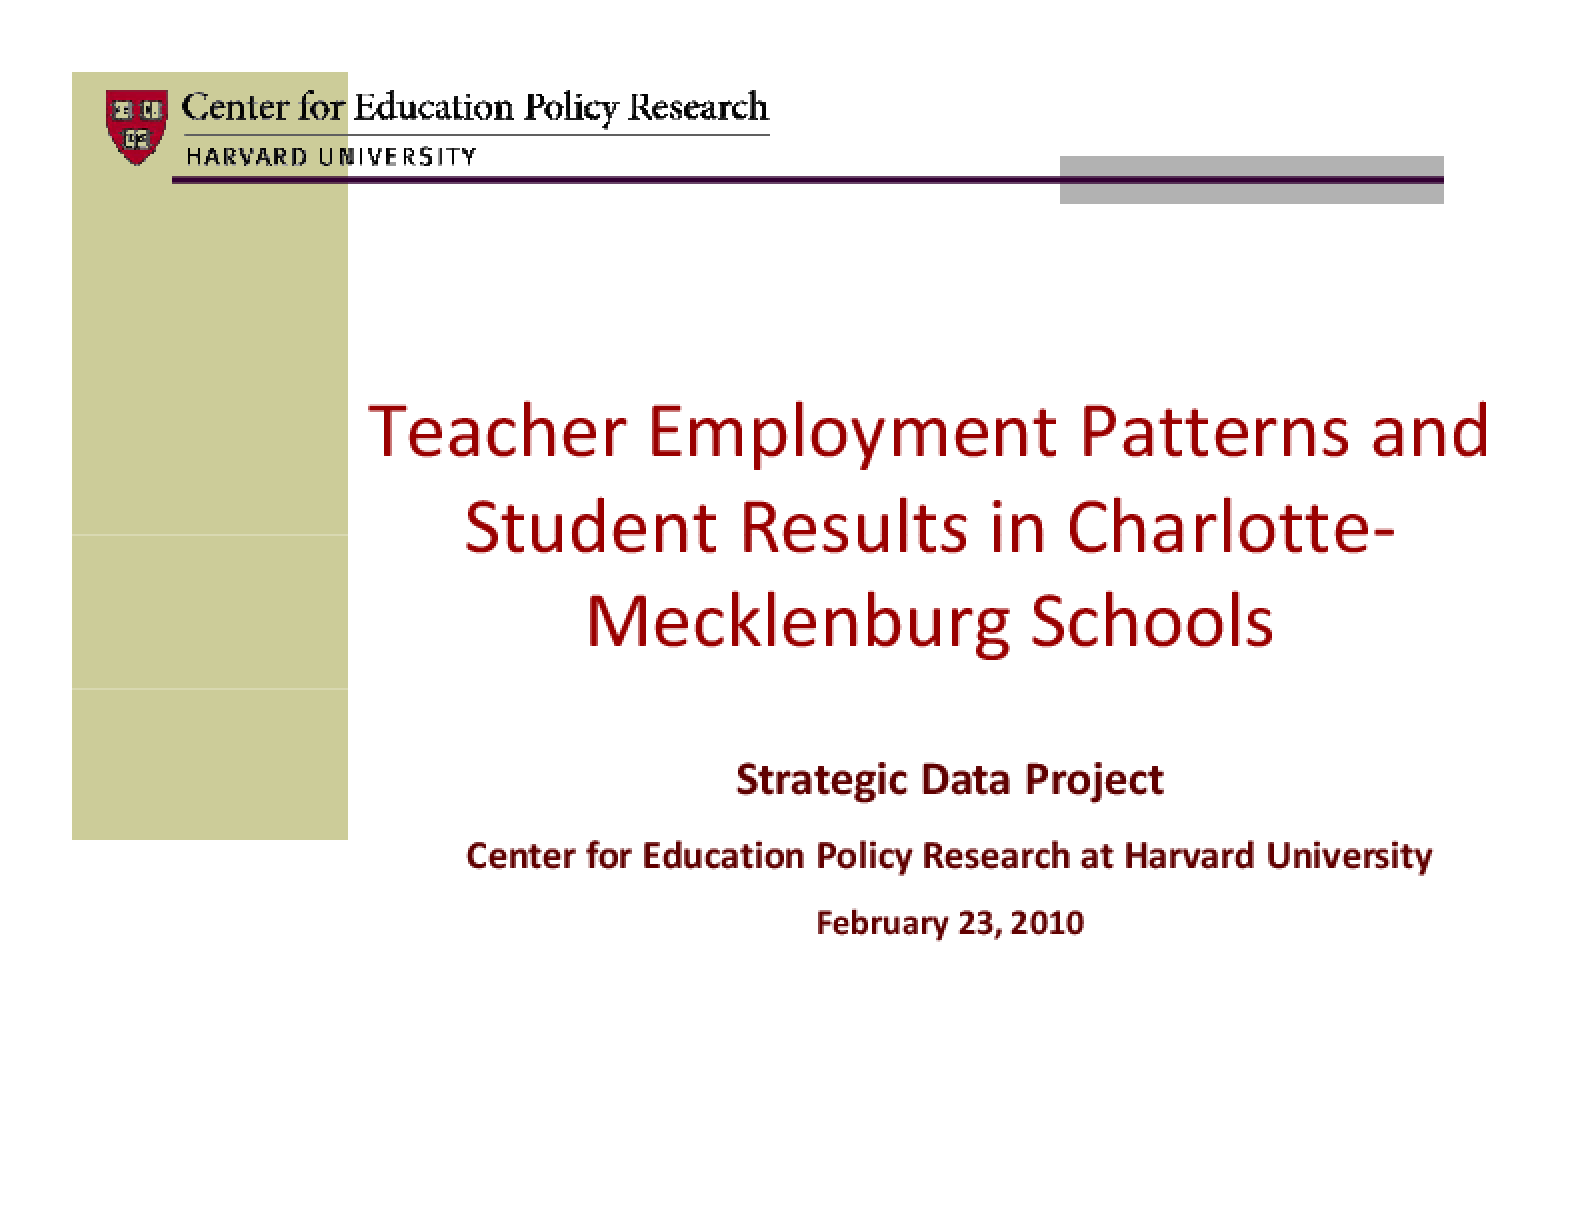 Teacher Employment Patterns and Student Results in Charlotte-Mecklenburg Schools